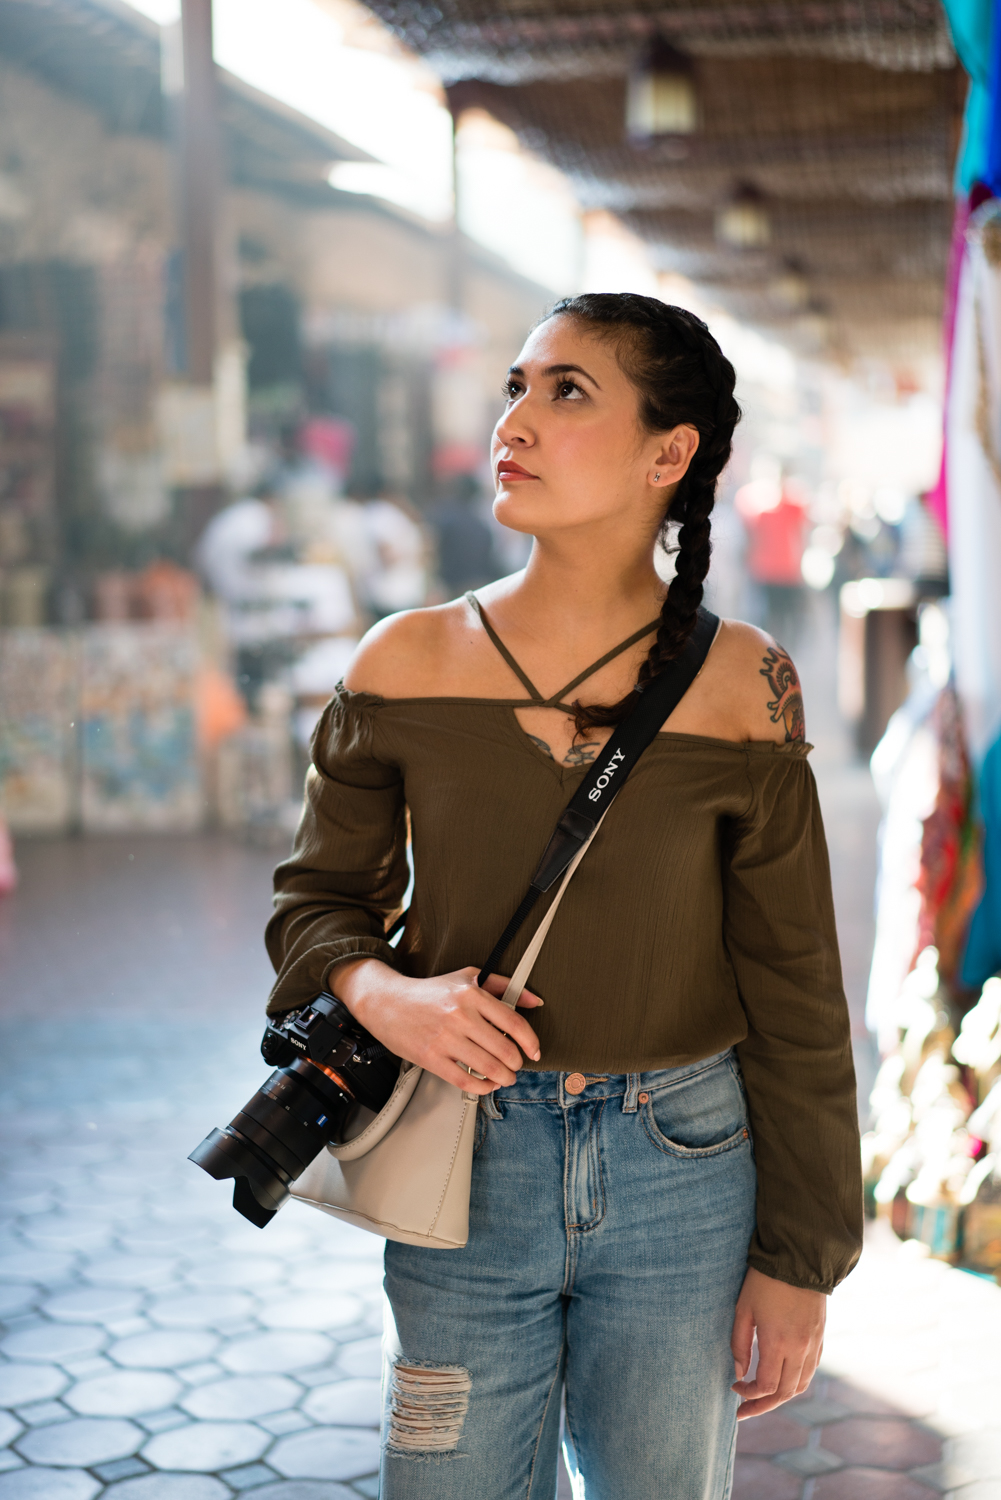 Amanda walking through the market in Old Dubai.  Sony A7RII, Zeiss 55mm f/1.8 (iso400, f/1.8, 1/400s)